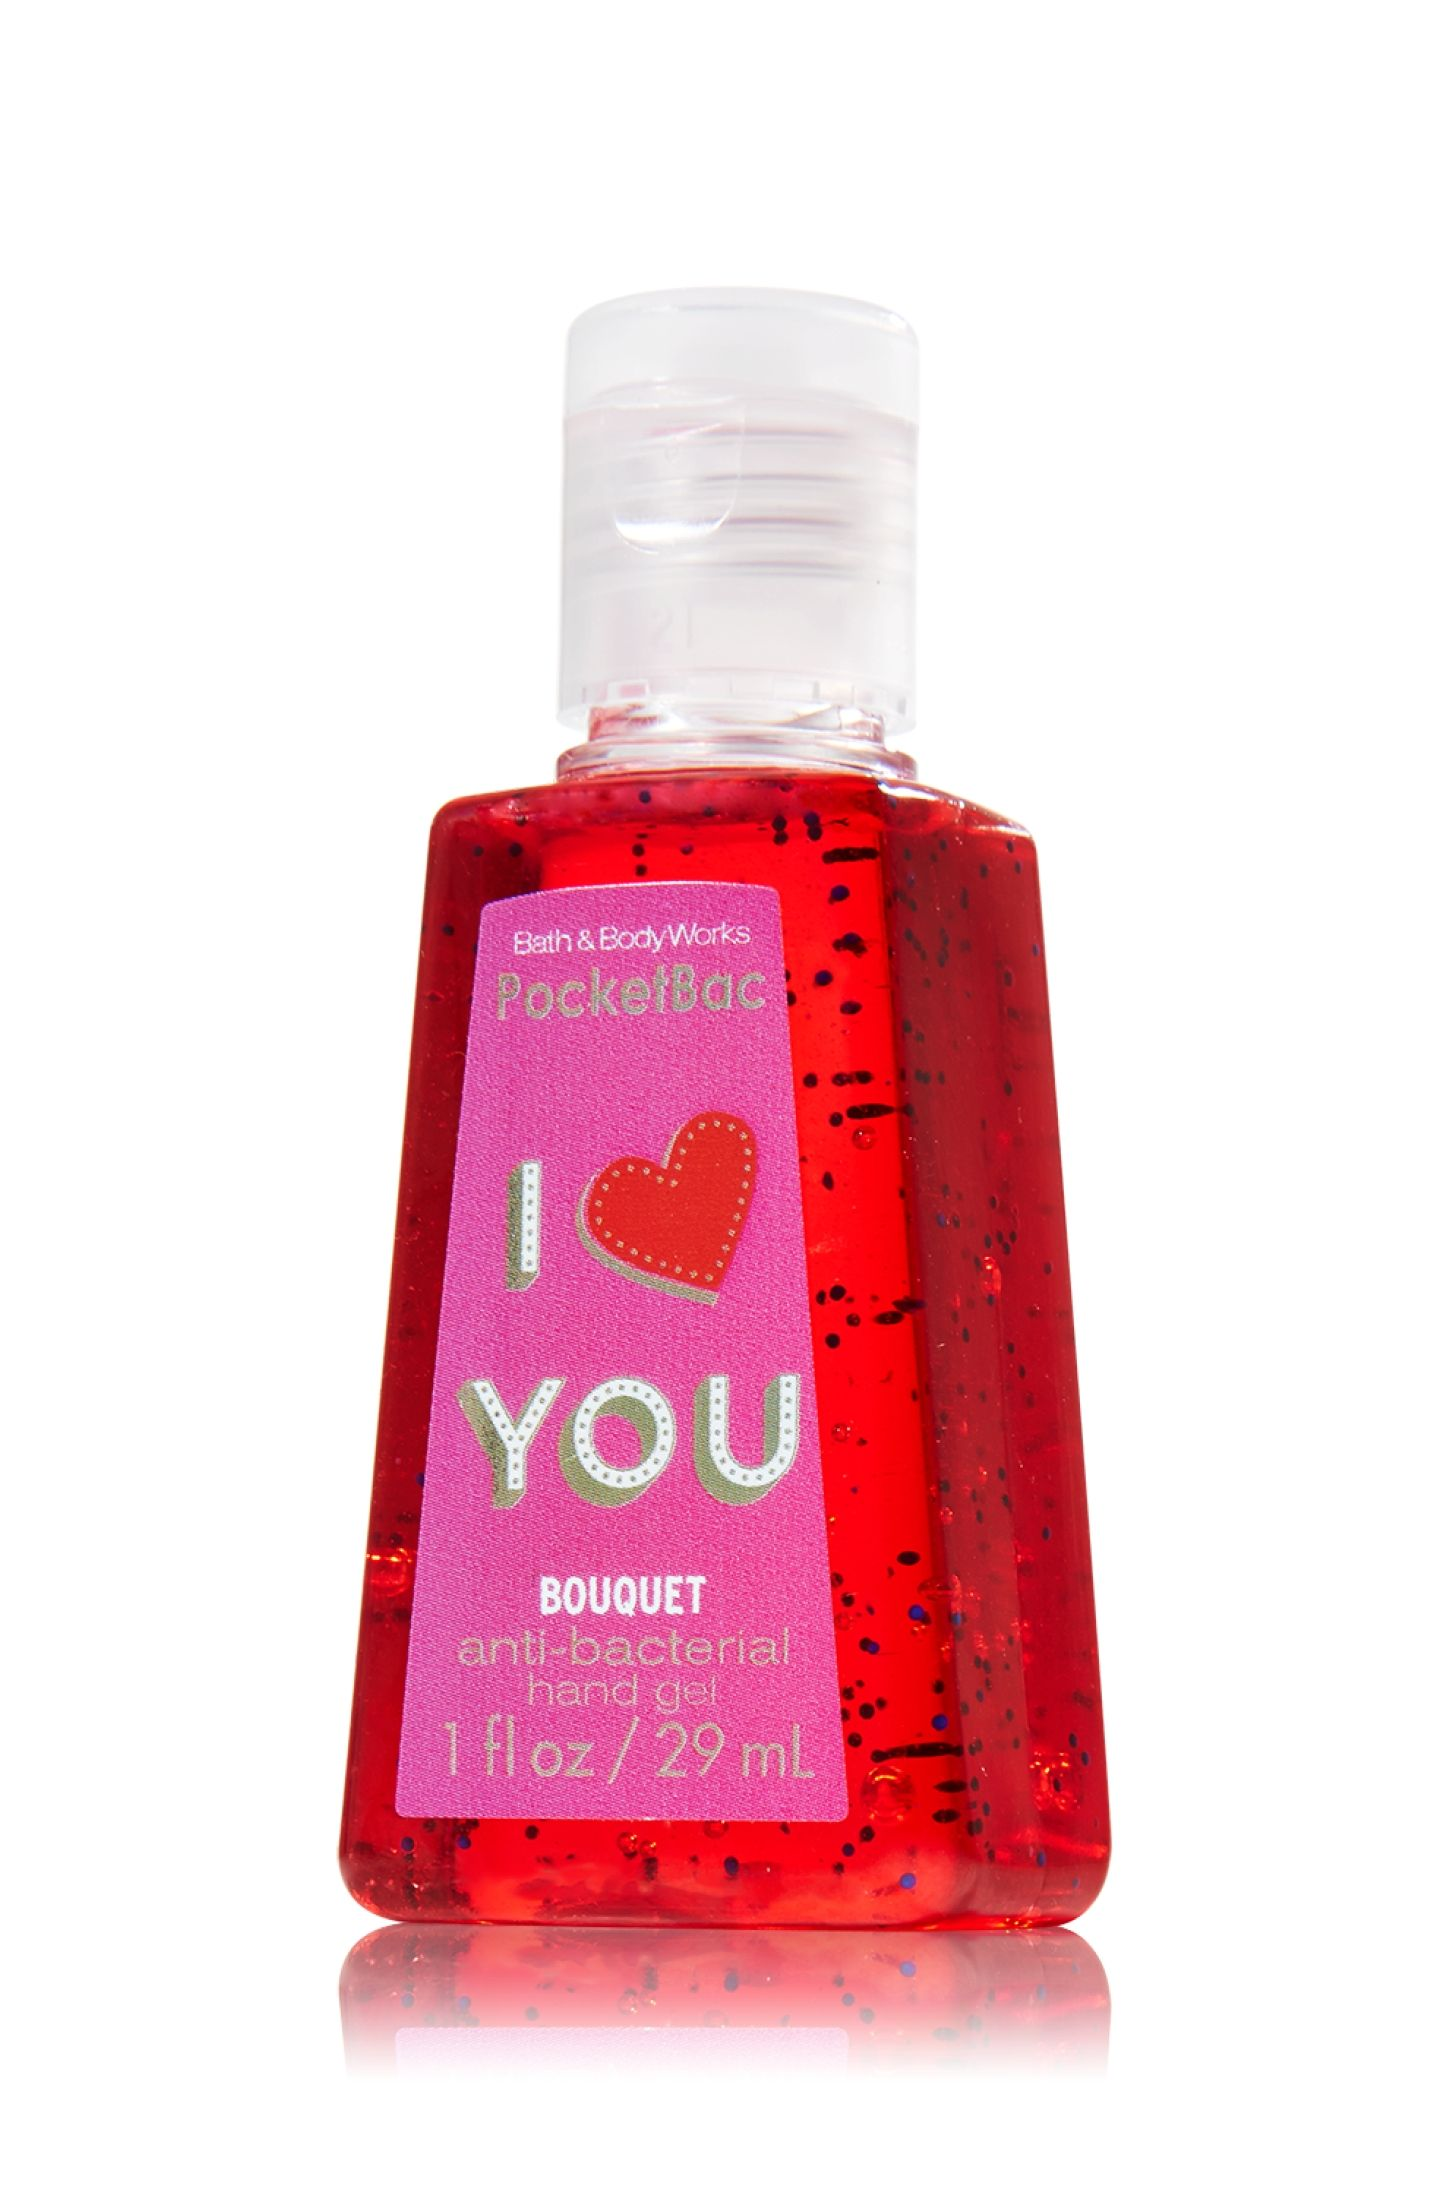 Bouquet Pocketbac Sanitizing Hand Gel Anti Bacterial Bath